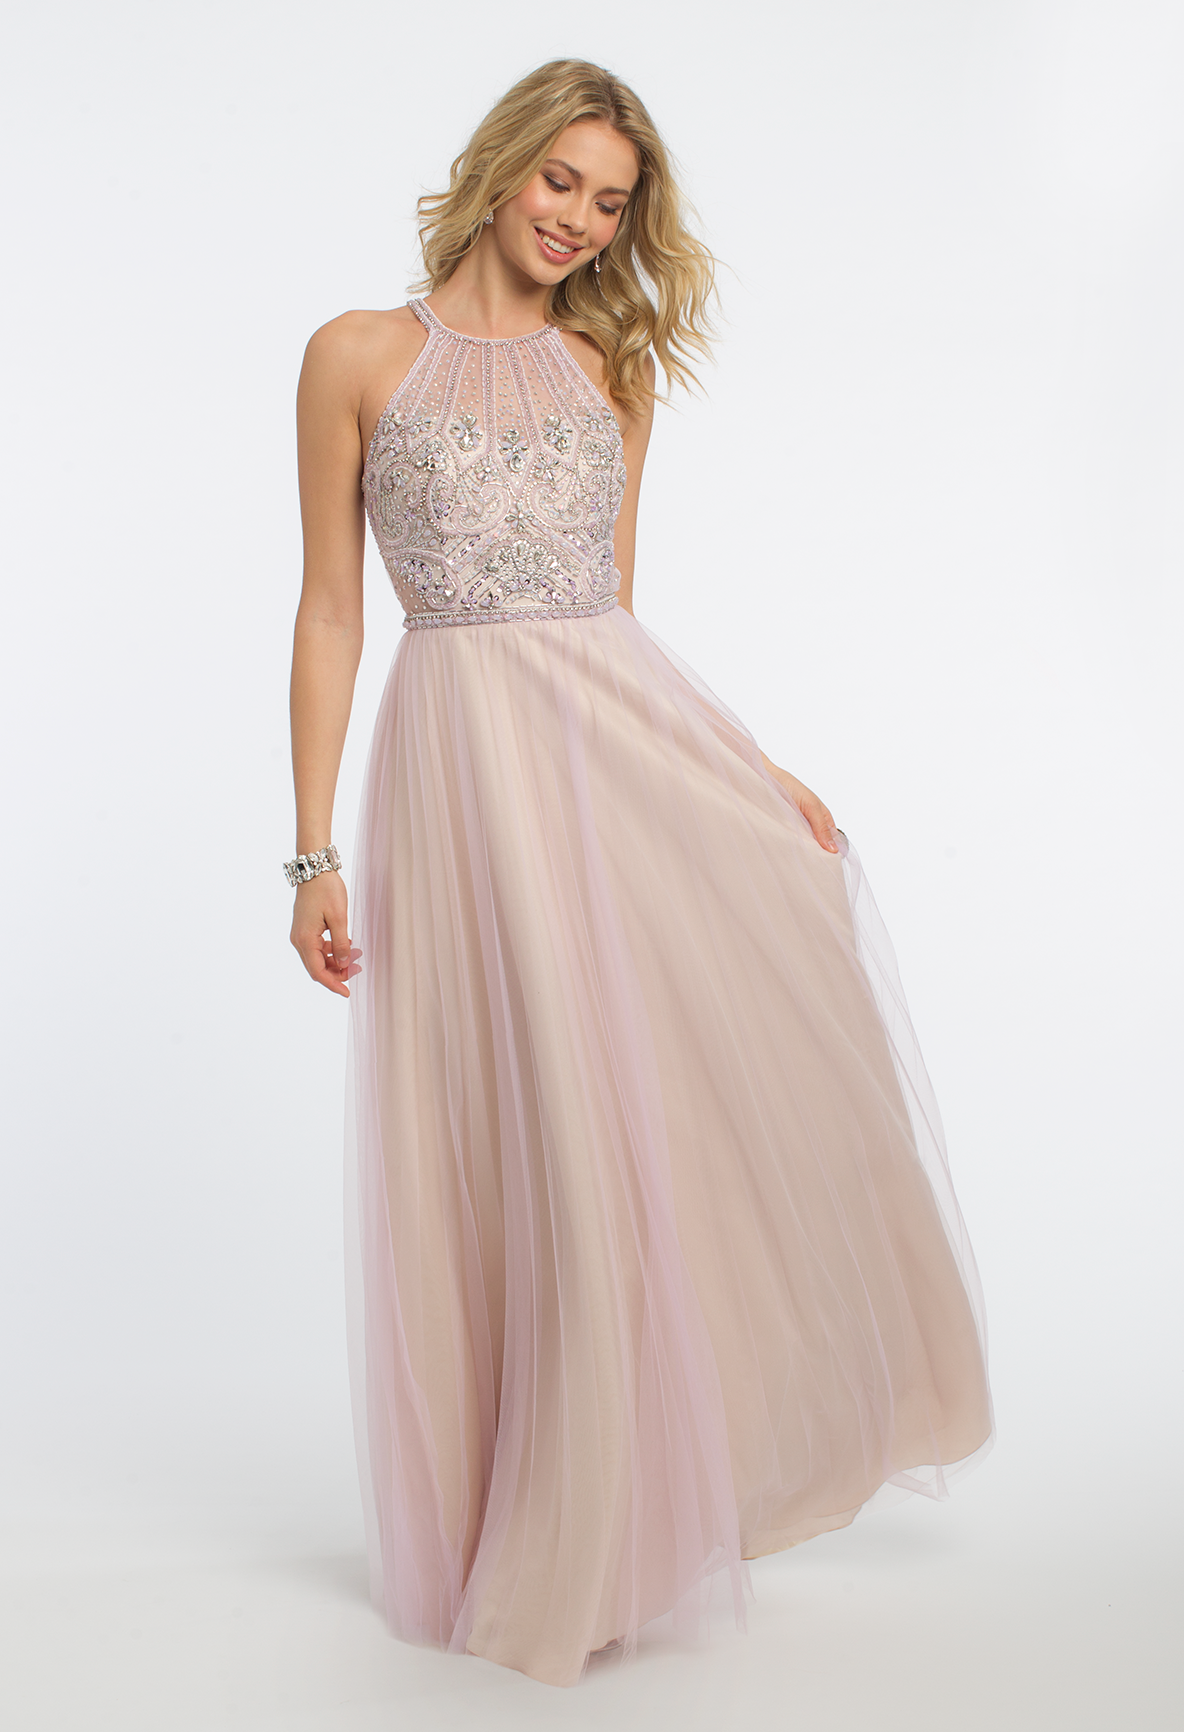 Glide Through The Night Looking Effortlessly Gorgeous In This Long Prom Dress With Its Halter Illusion Neckline Fitted Chic Cocktail Dress Dresses Prom Heels [ 1732 x 1184 Pixel ]